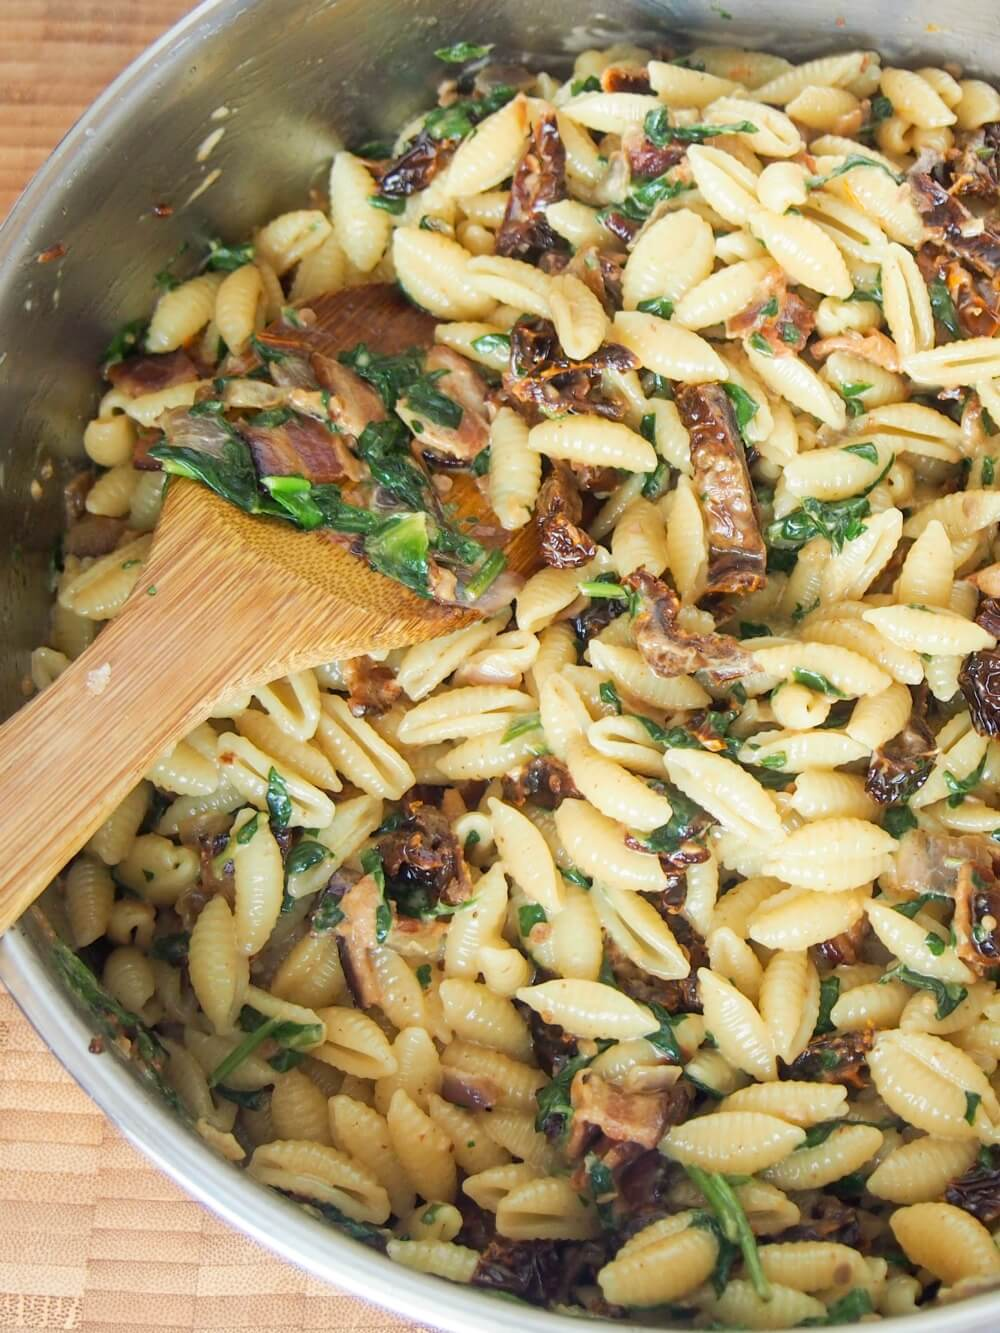 Bacon sundried tomato pasta with spinach and cream